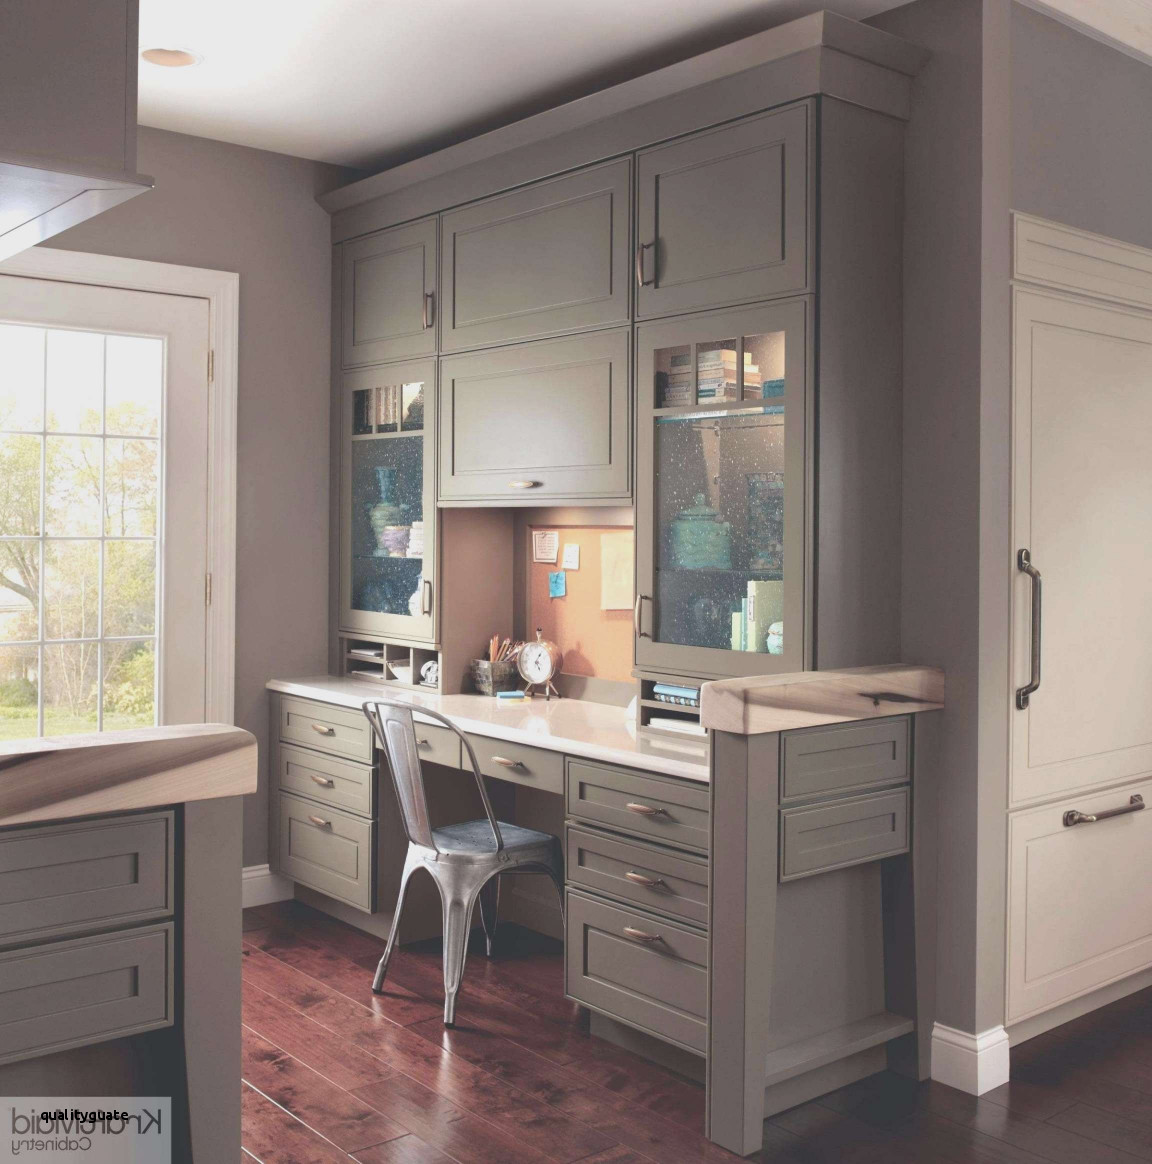 is hardwood flooring good for kitchens of 21 stylish oak kitchen furniture portrait for kitchen cabinets with dark wood floors elegant pickled maple kitchen cabinets awesome kitchen cabinet 0d kitchen